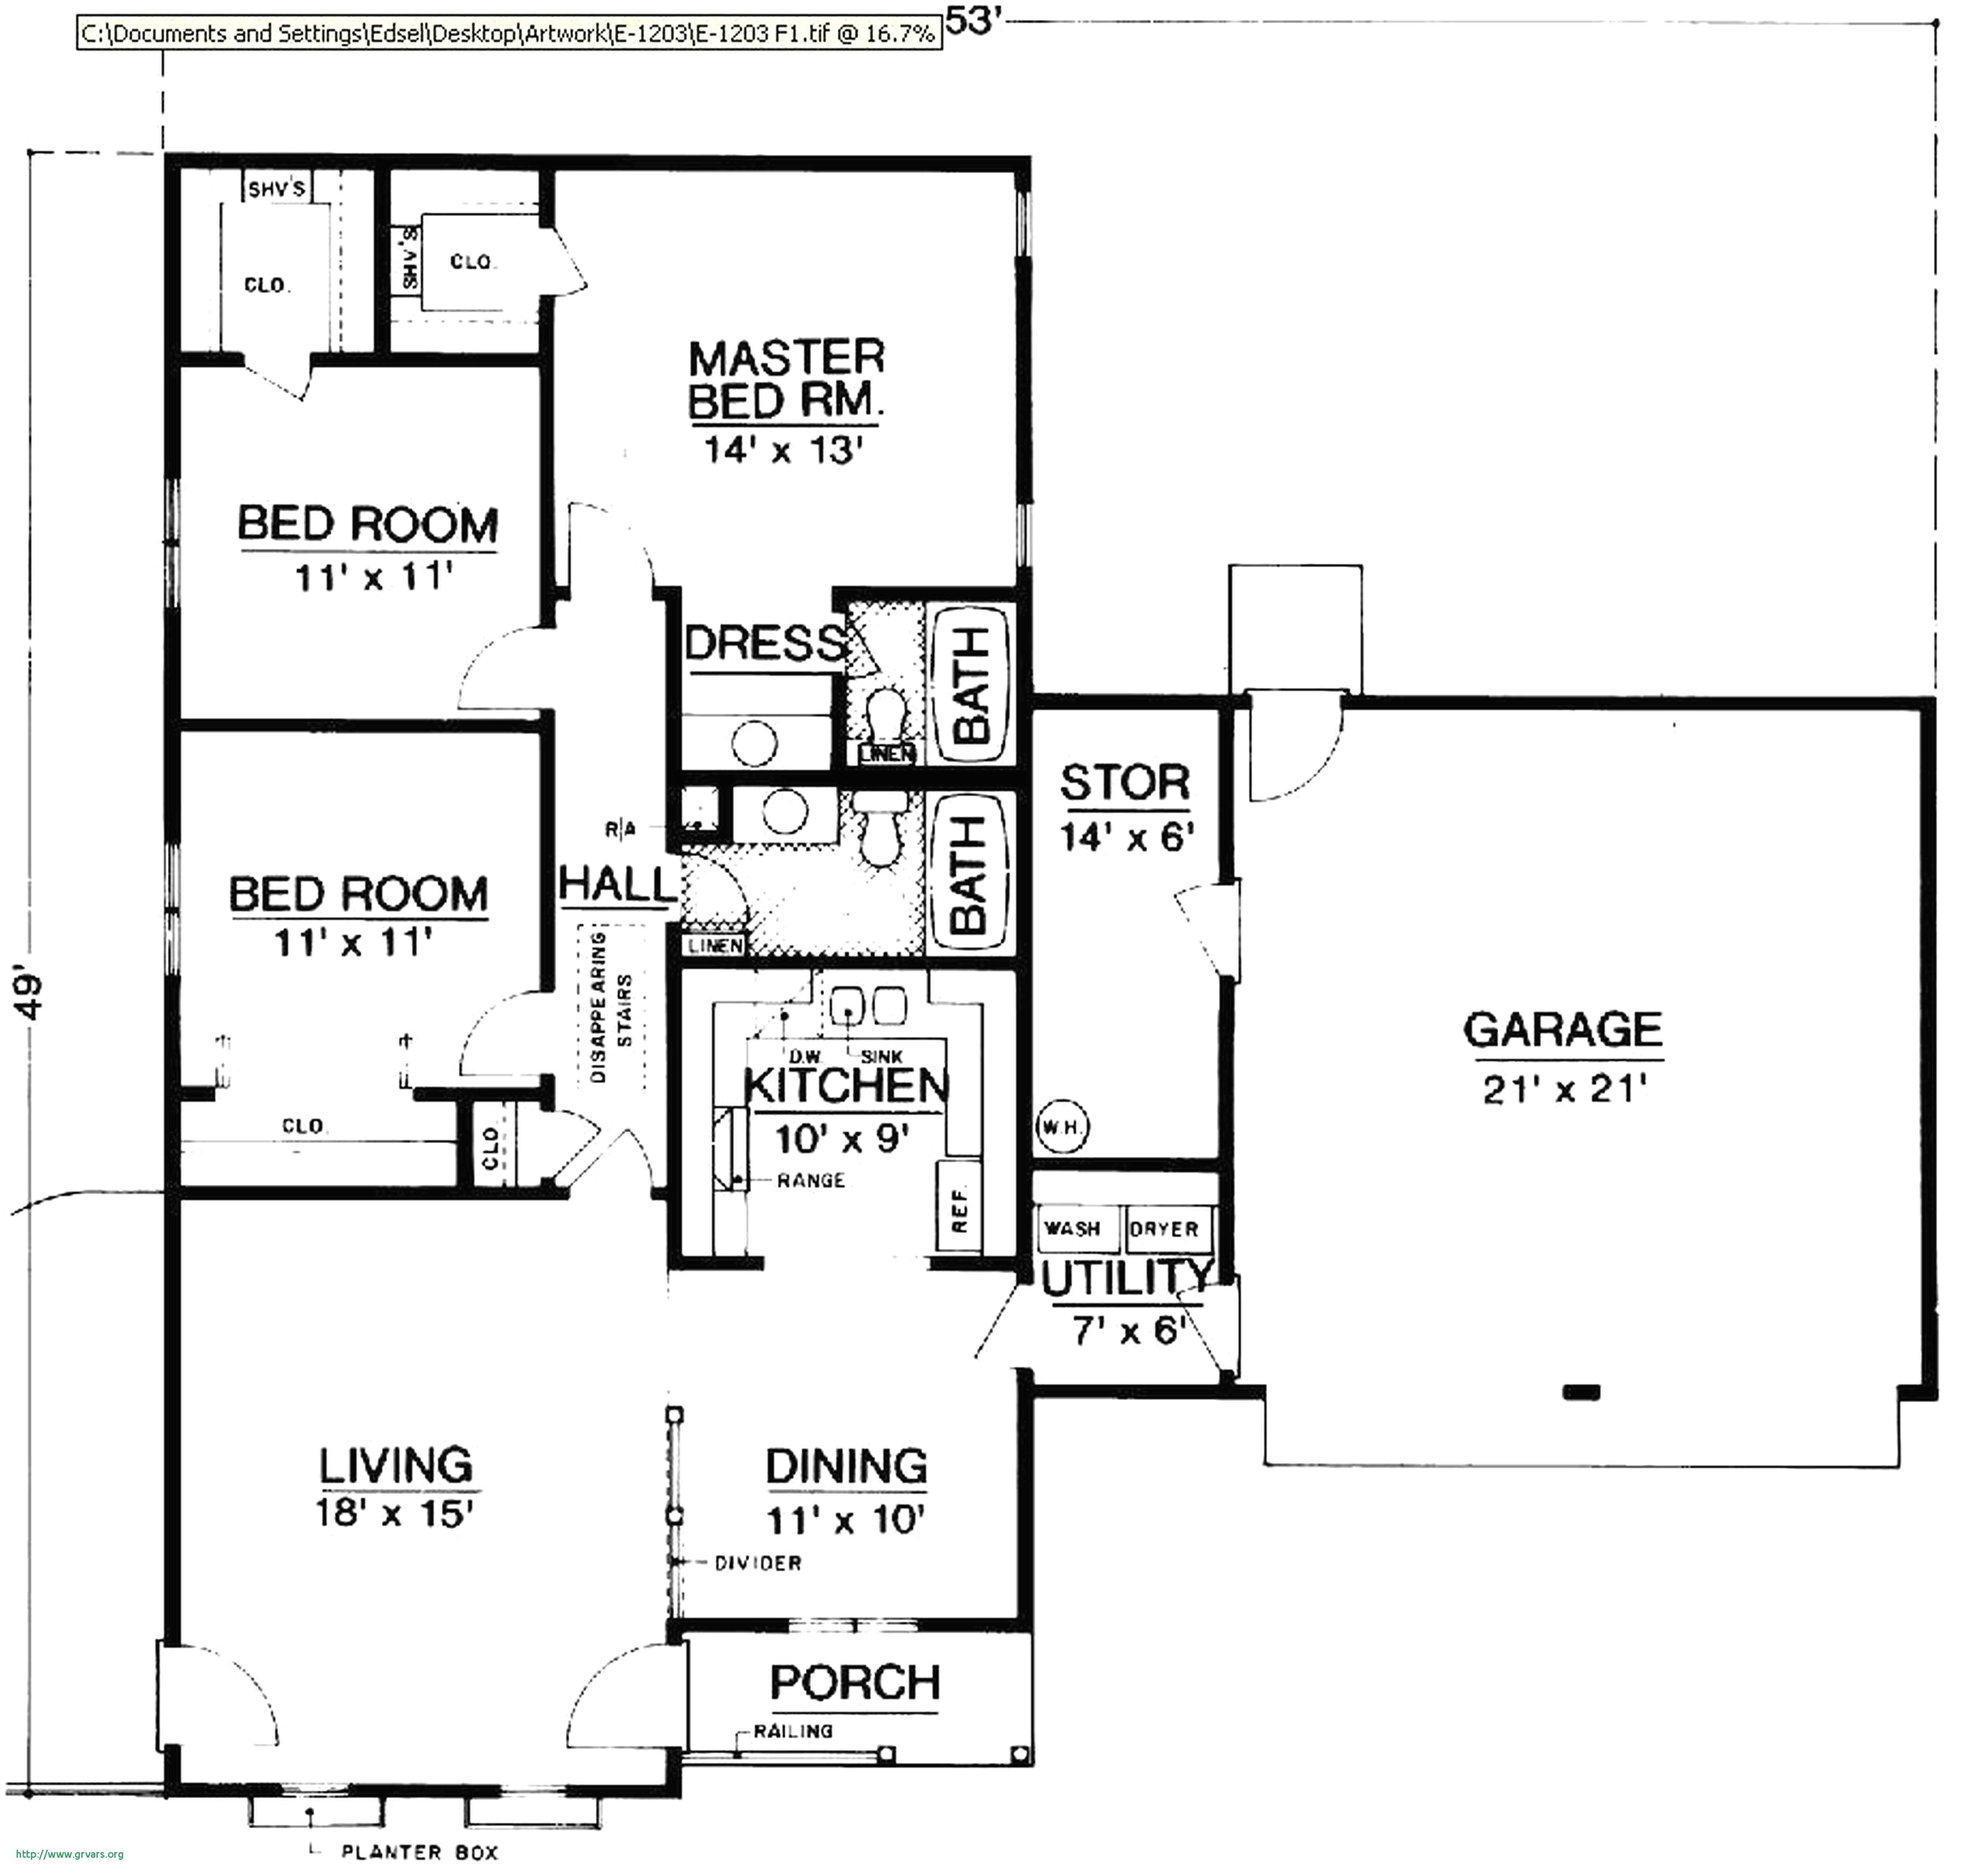 Haunted House Inside Room Luxury Haunted House Inside Room What S It Like Living In A Haunted House Floor Plan Design Home Design Plans Tiny House Plans